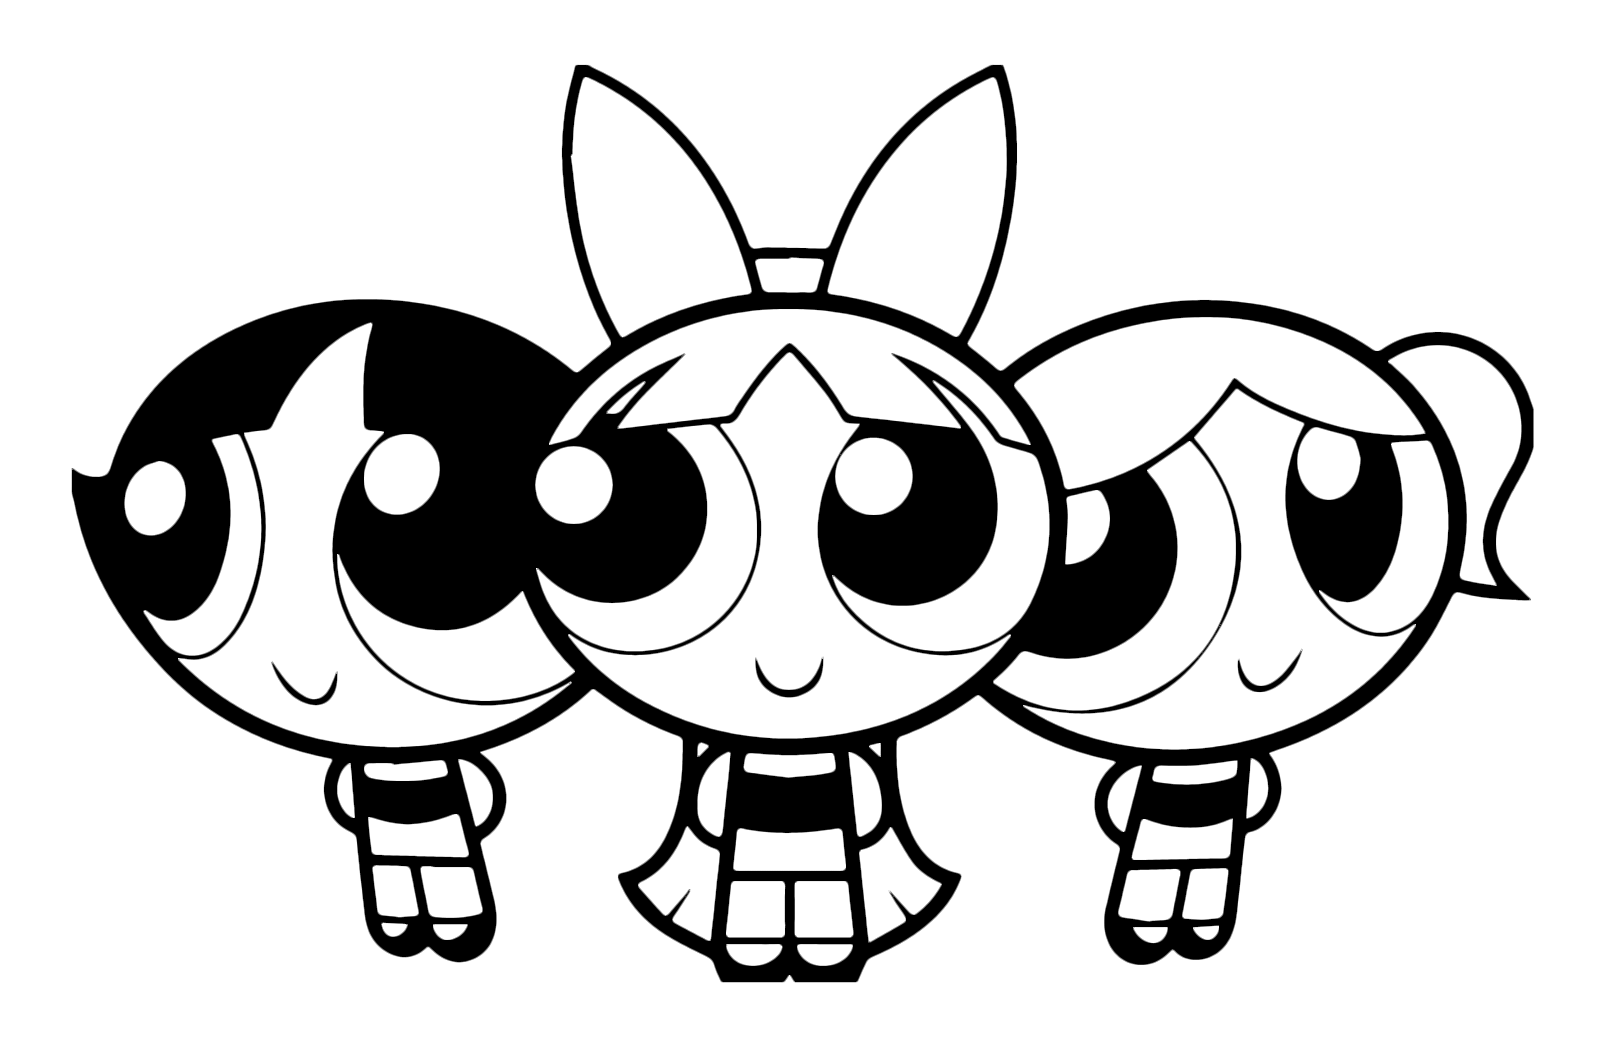 coloring powerpuff girls drawing top 15 free printable powerpuff girls coloring pages online drawing girls coloring powerpuff